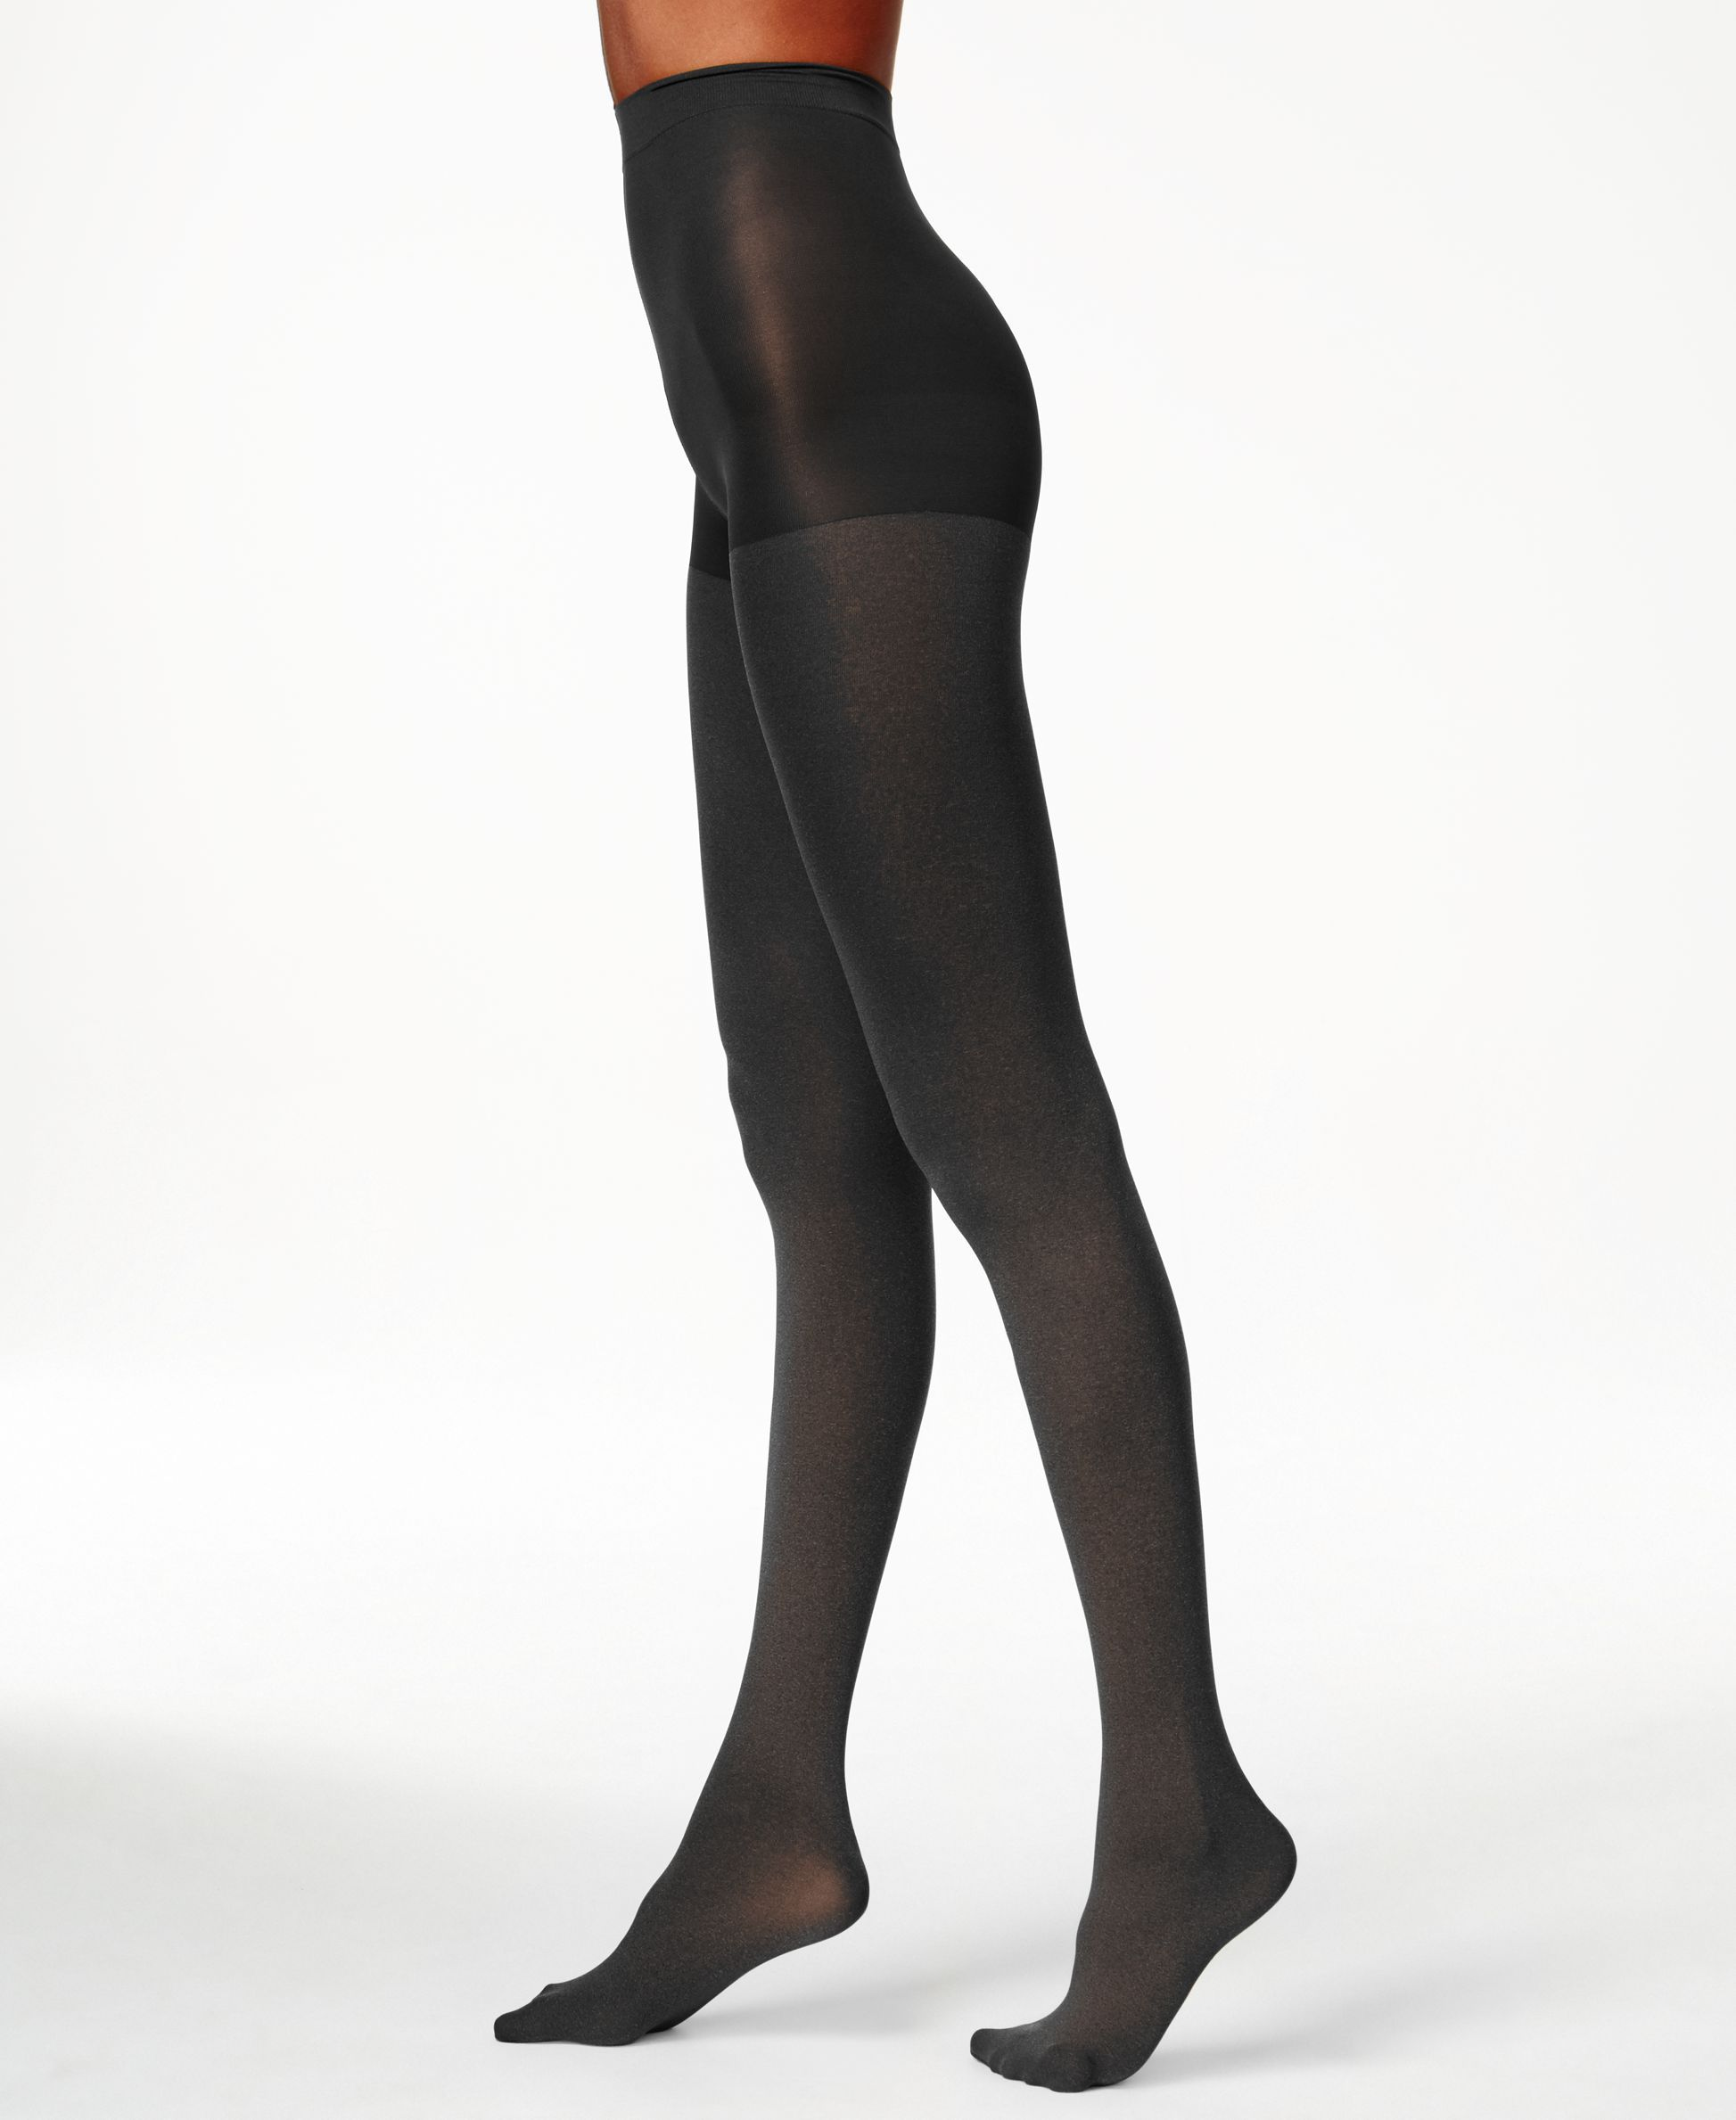 a37fffd7bb5 Women s Super Control Top Opaque Tights in 2019